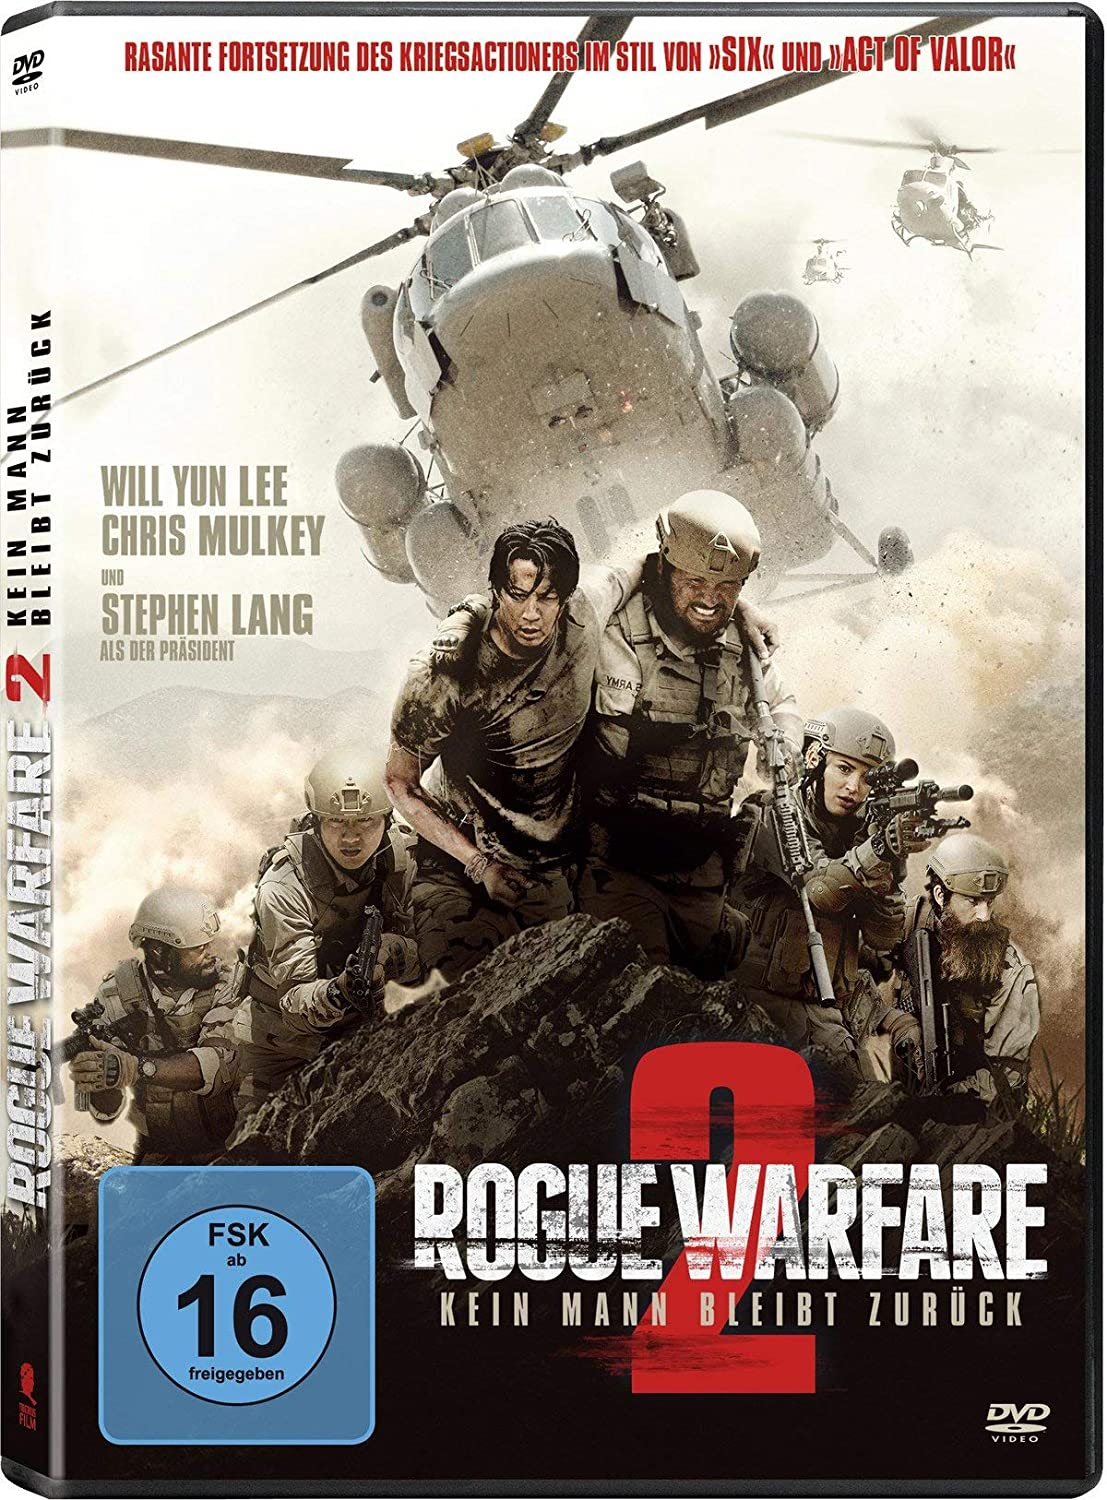 Cover: Rogue warfare 2 1 DVD-Video (circa 99 min)